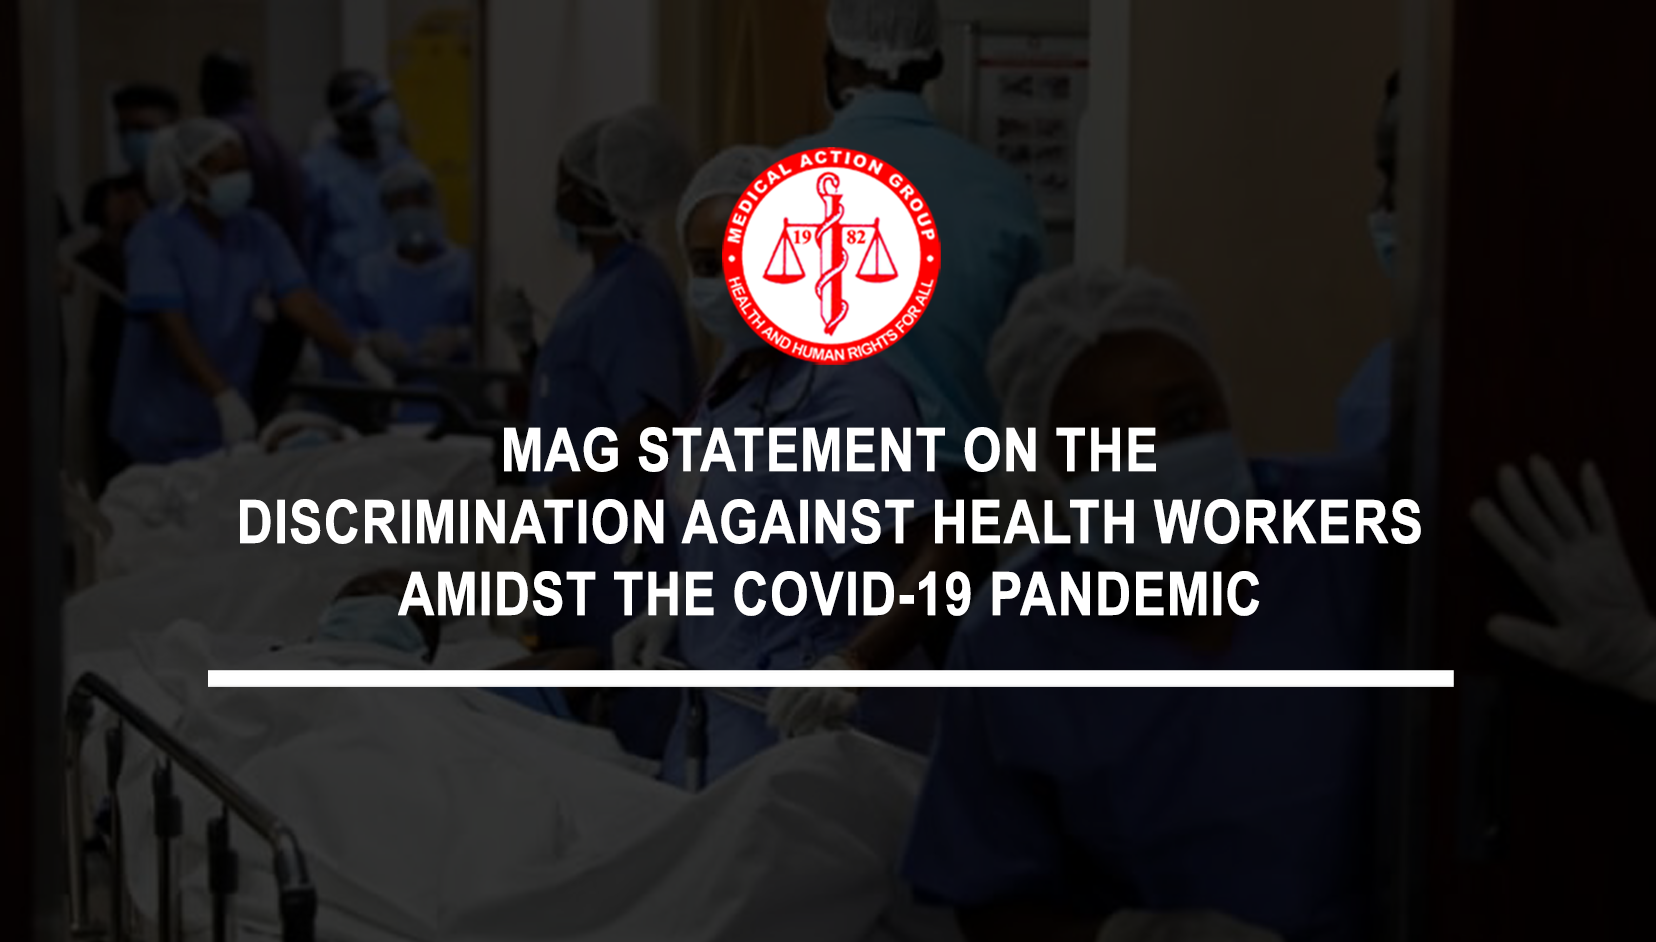 All forms of discrimination against Health Workers must end NOW!, MAG Statement on the Discrimination against Health Workers amidst the COVID-19 Pandemic